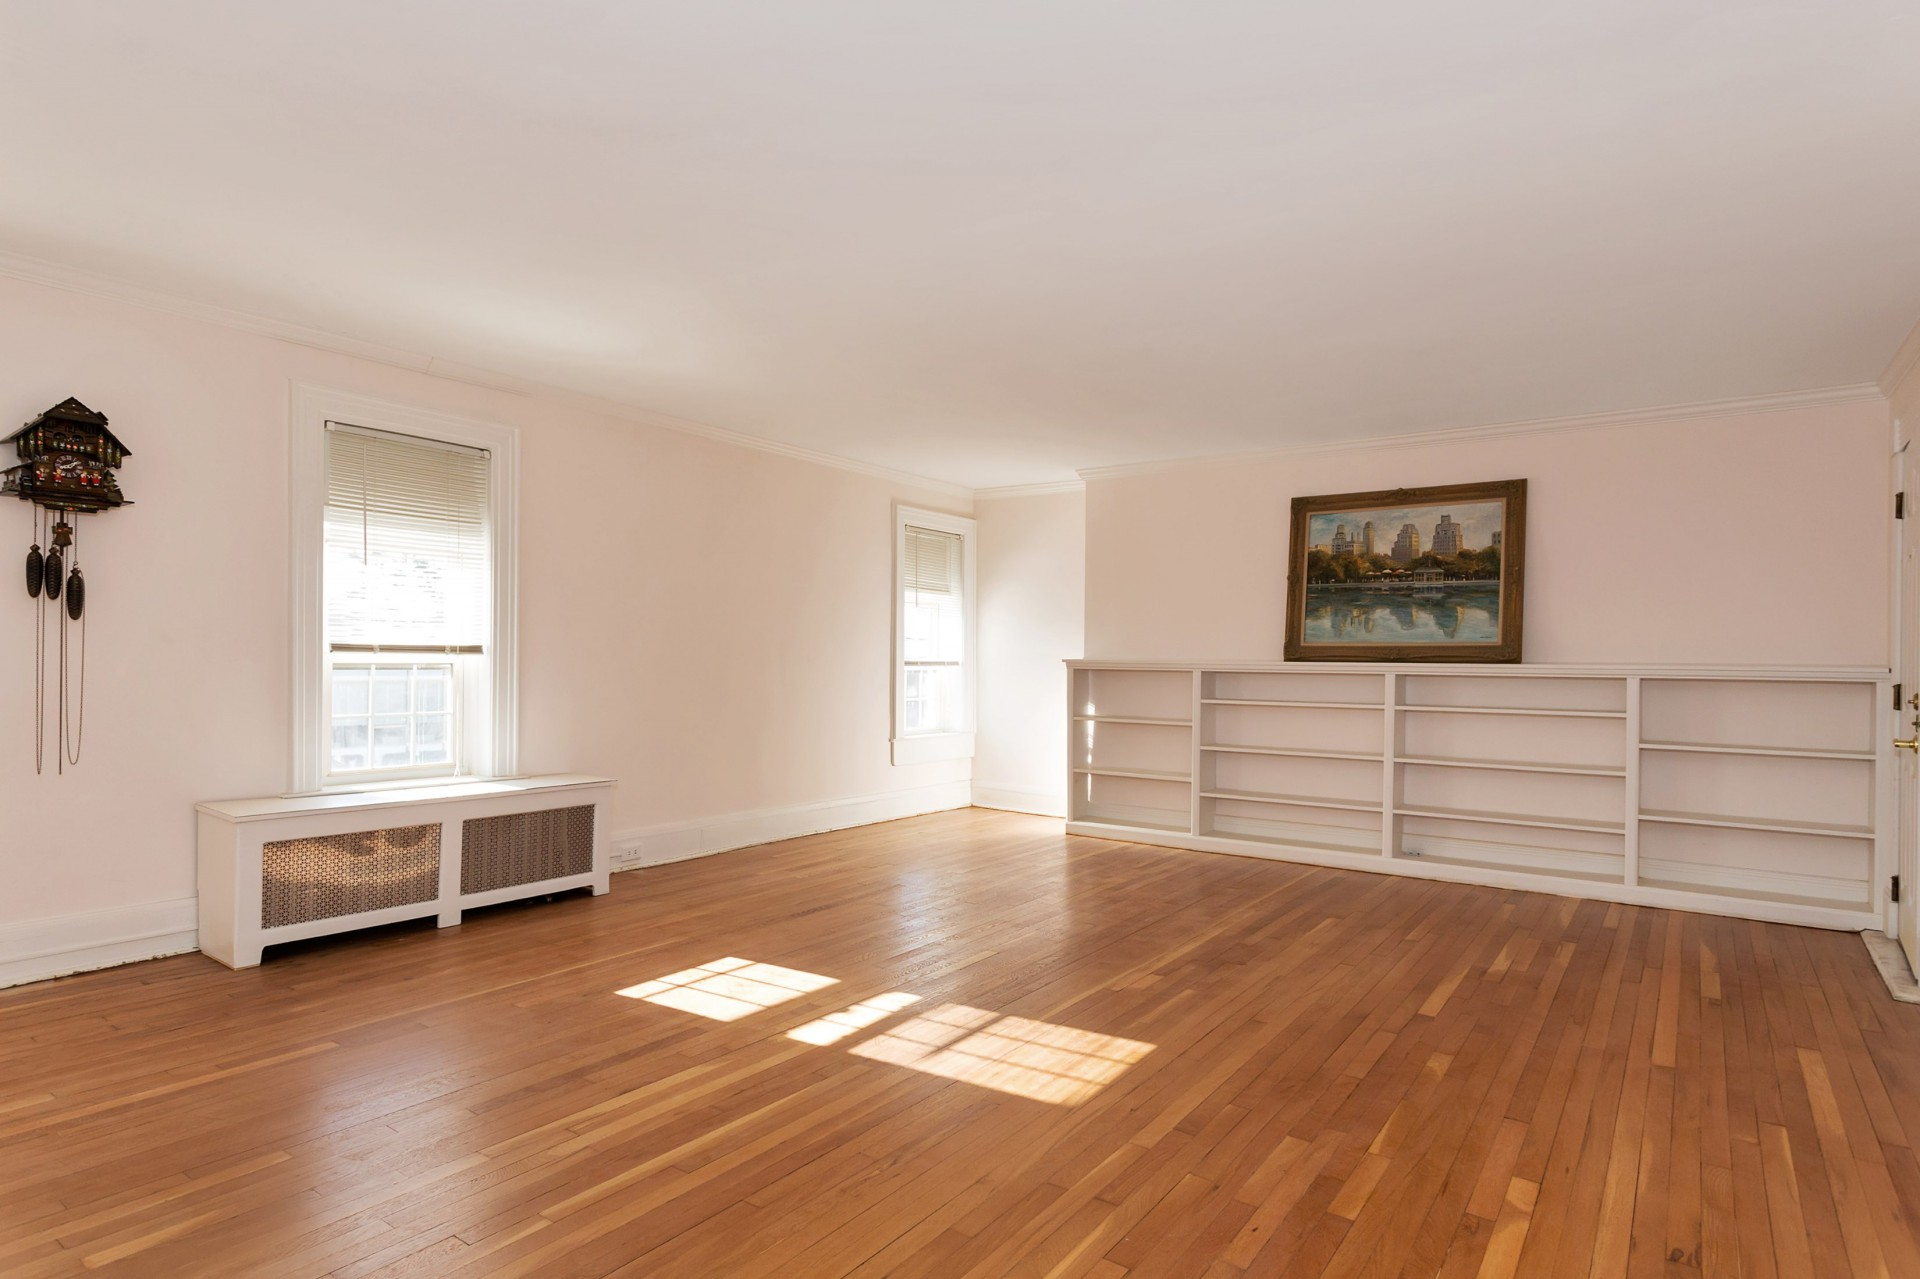 Apartment for Sale at Co-Op 105 Seventh St 3 6 Garden City, New York, 11530 United States